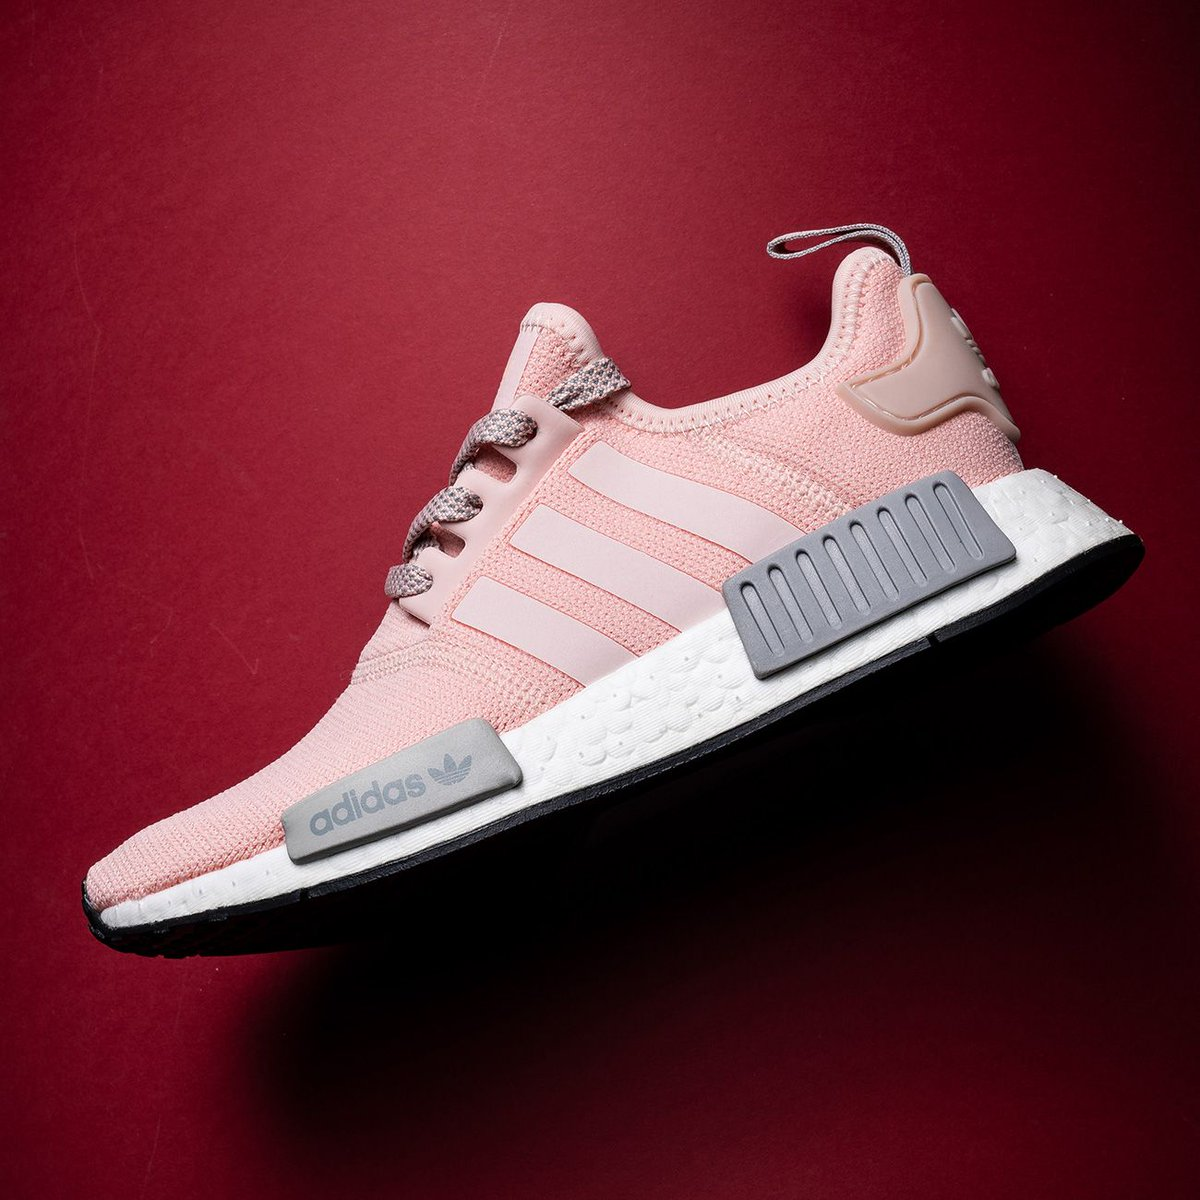 The adidas NMD R1 arrived in women's